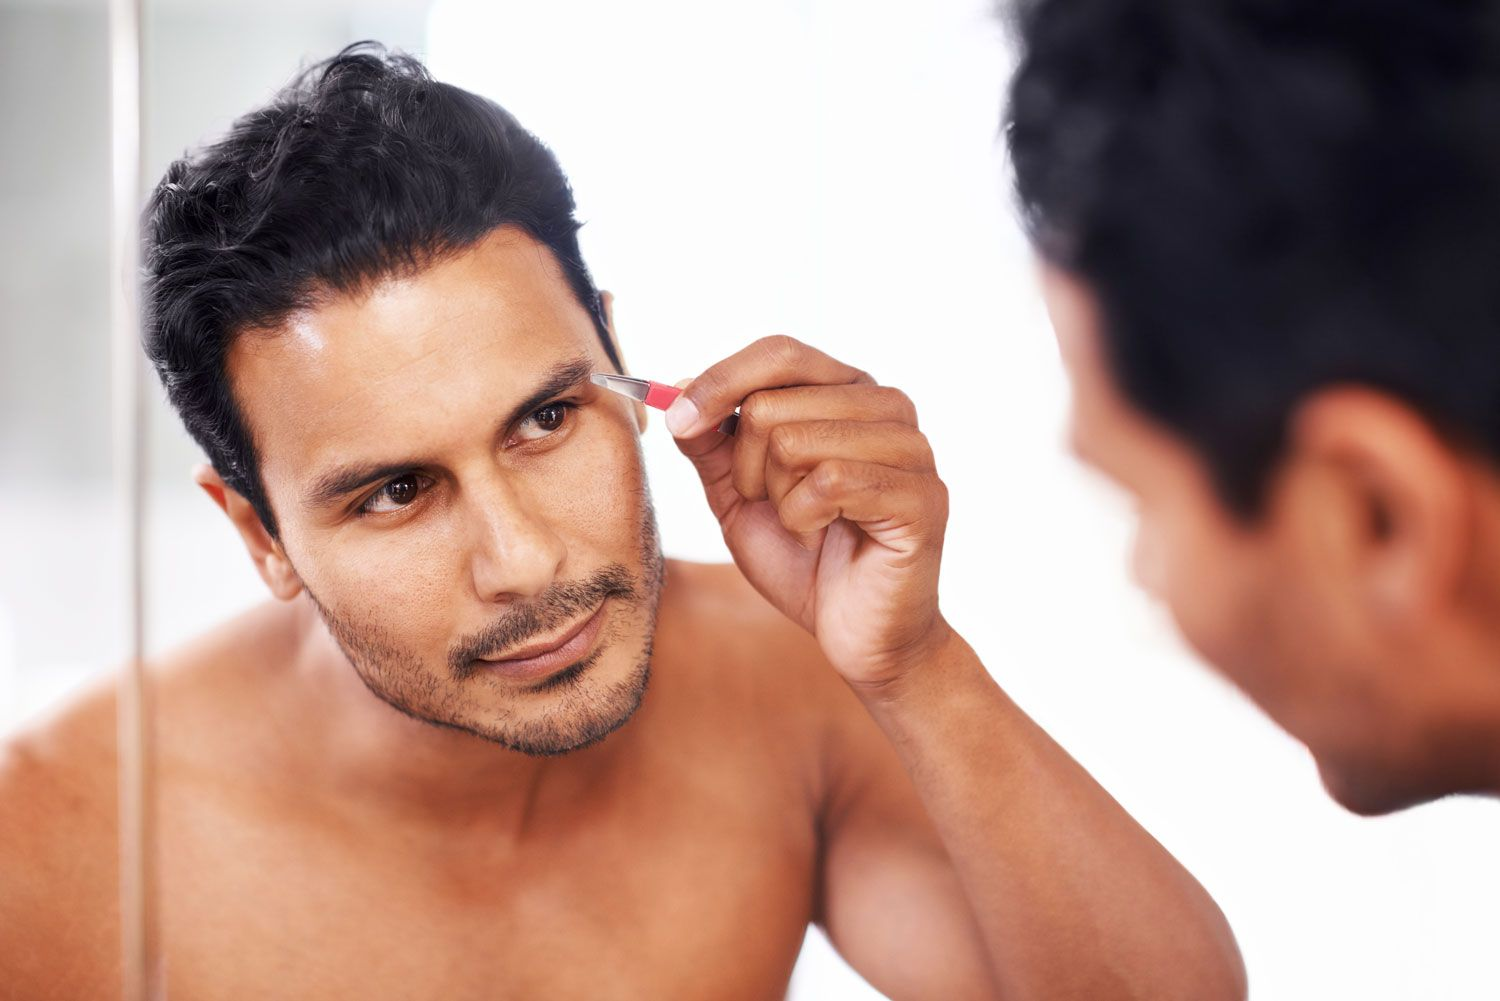 How To Trim Your Eyebrows Brow Trimmers And Scissors For Men